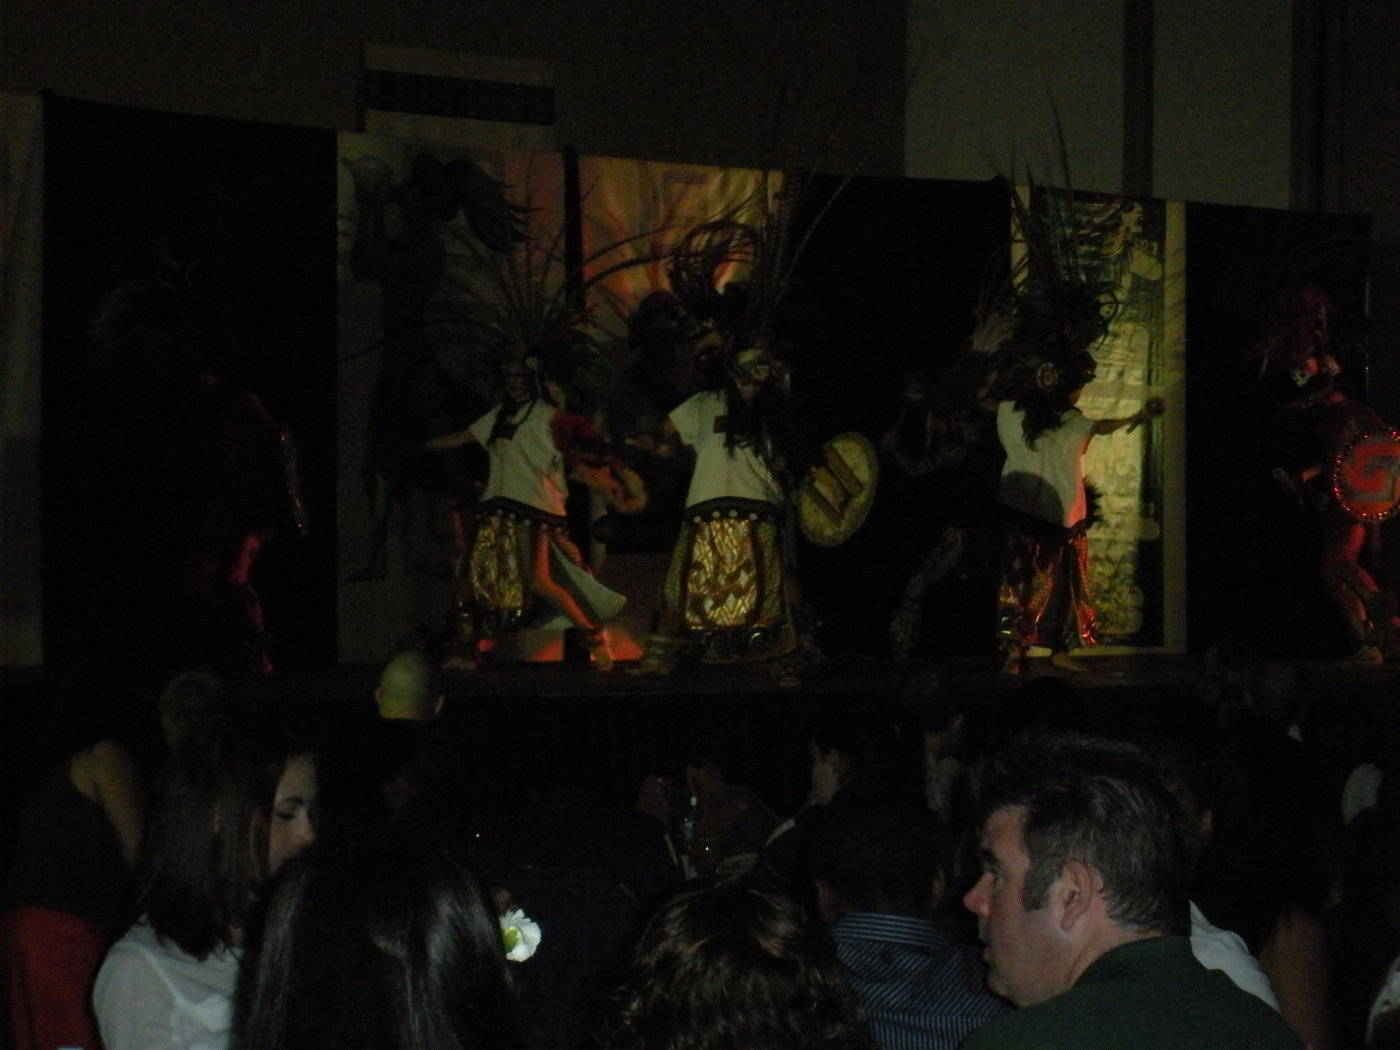 A look at the Mexican dancers.